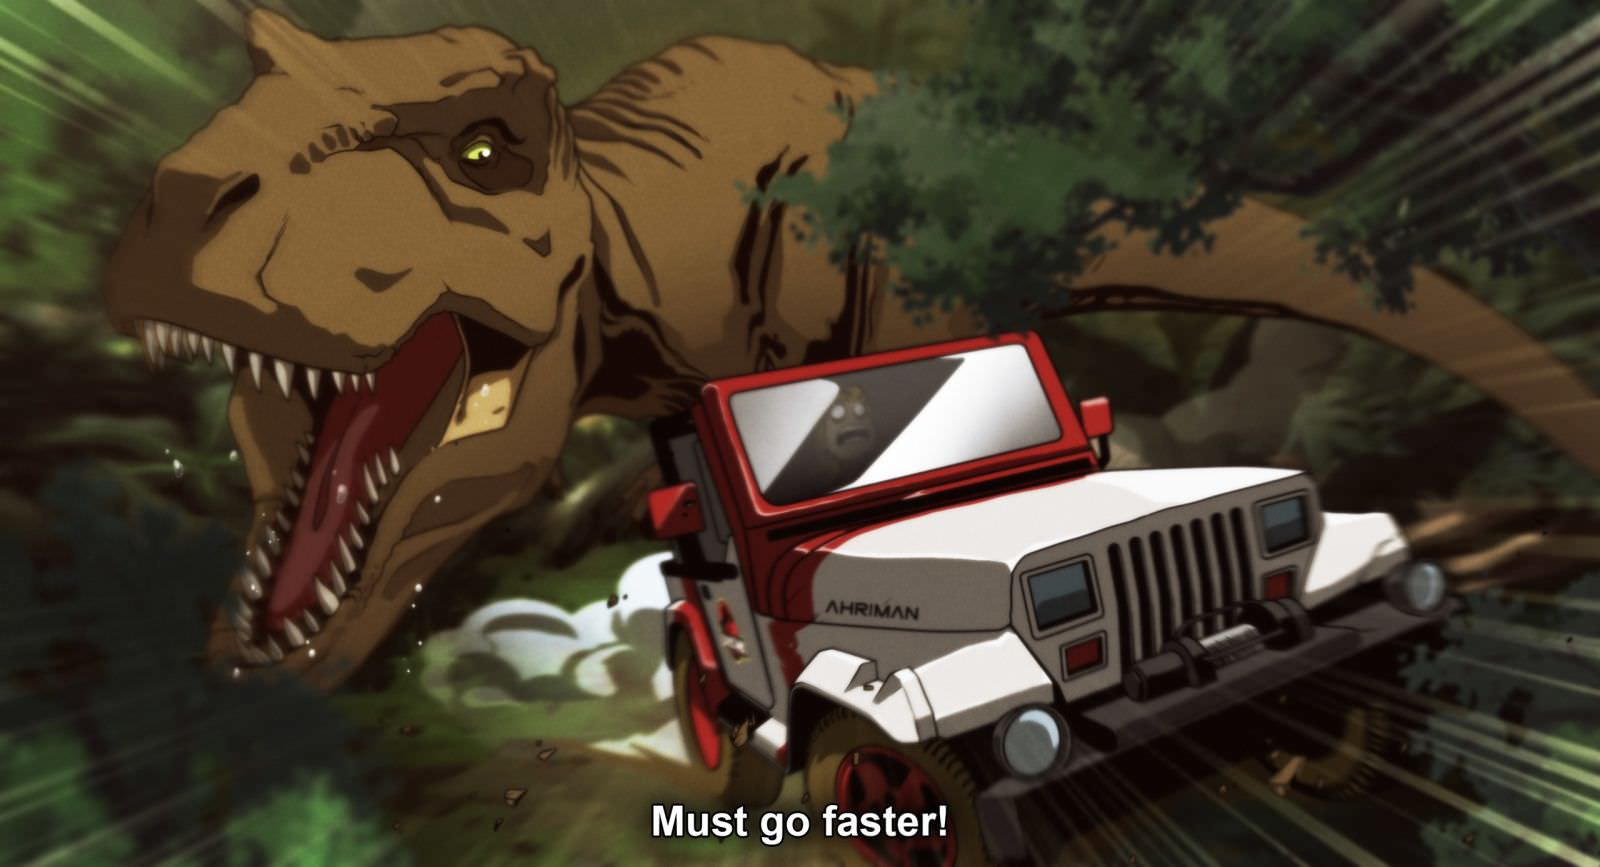 Ahriman JURASSIC PARK 3 - Must-See Art: Ahriman Turns Classic Flicks Into Anime!